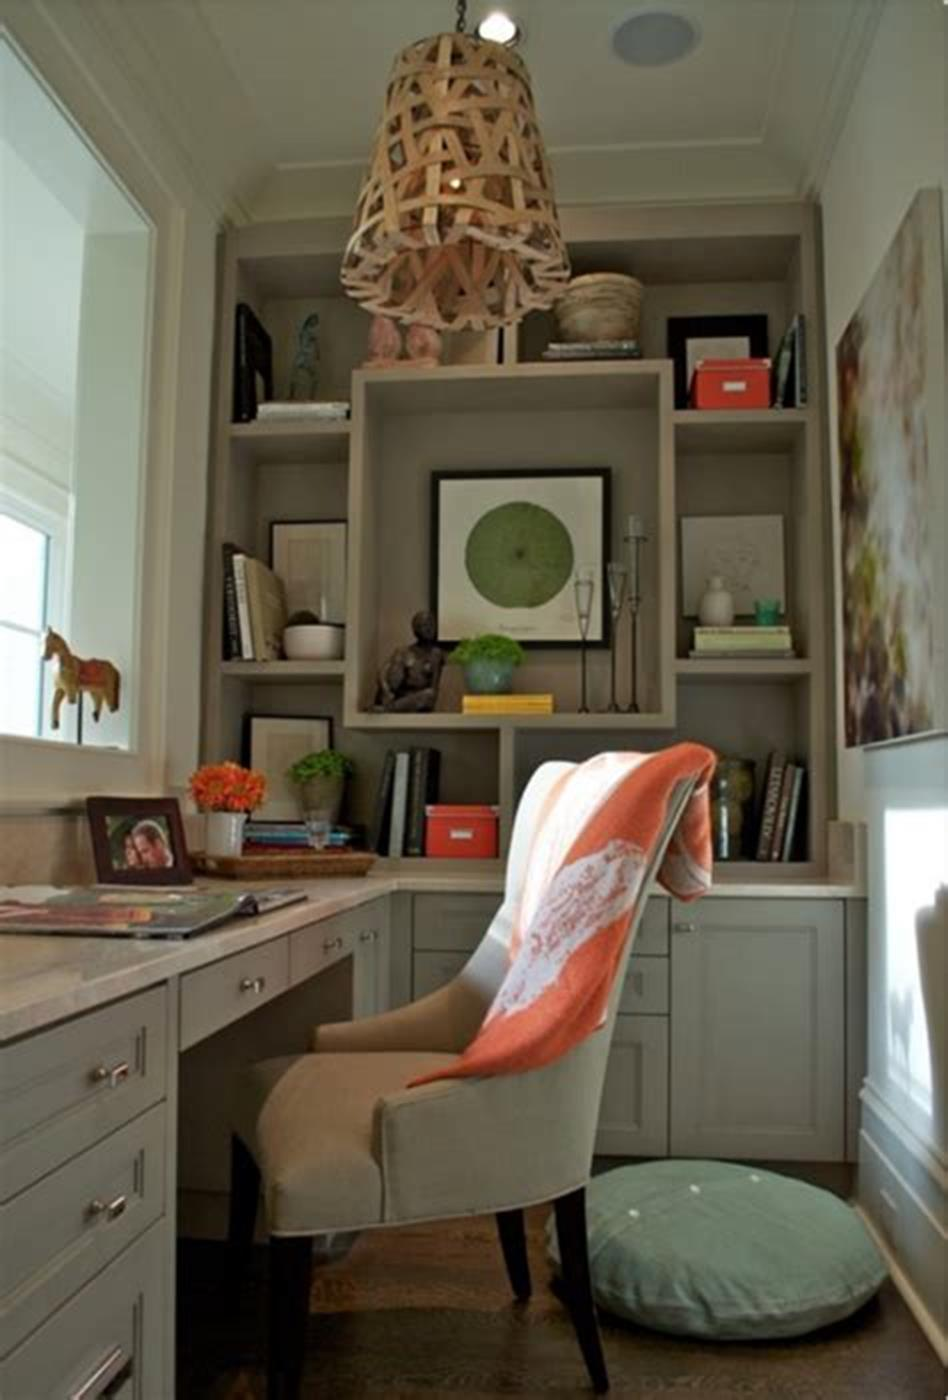 50 Best Small Space Office Decorating Ideas On a Budget 2019 48